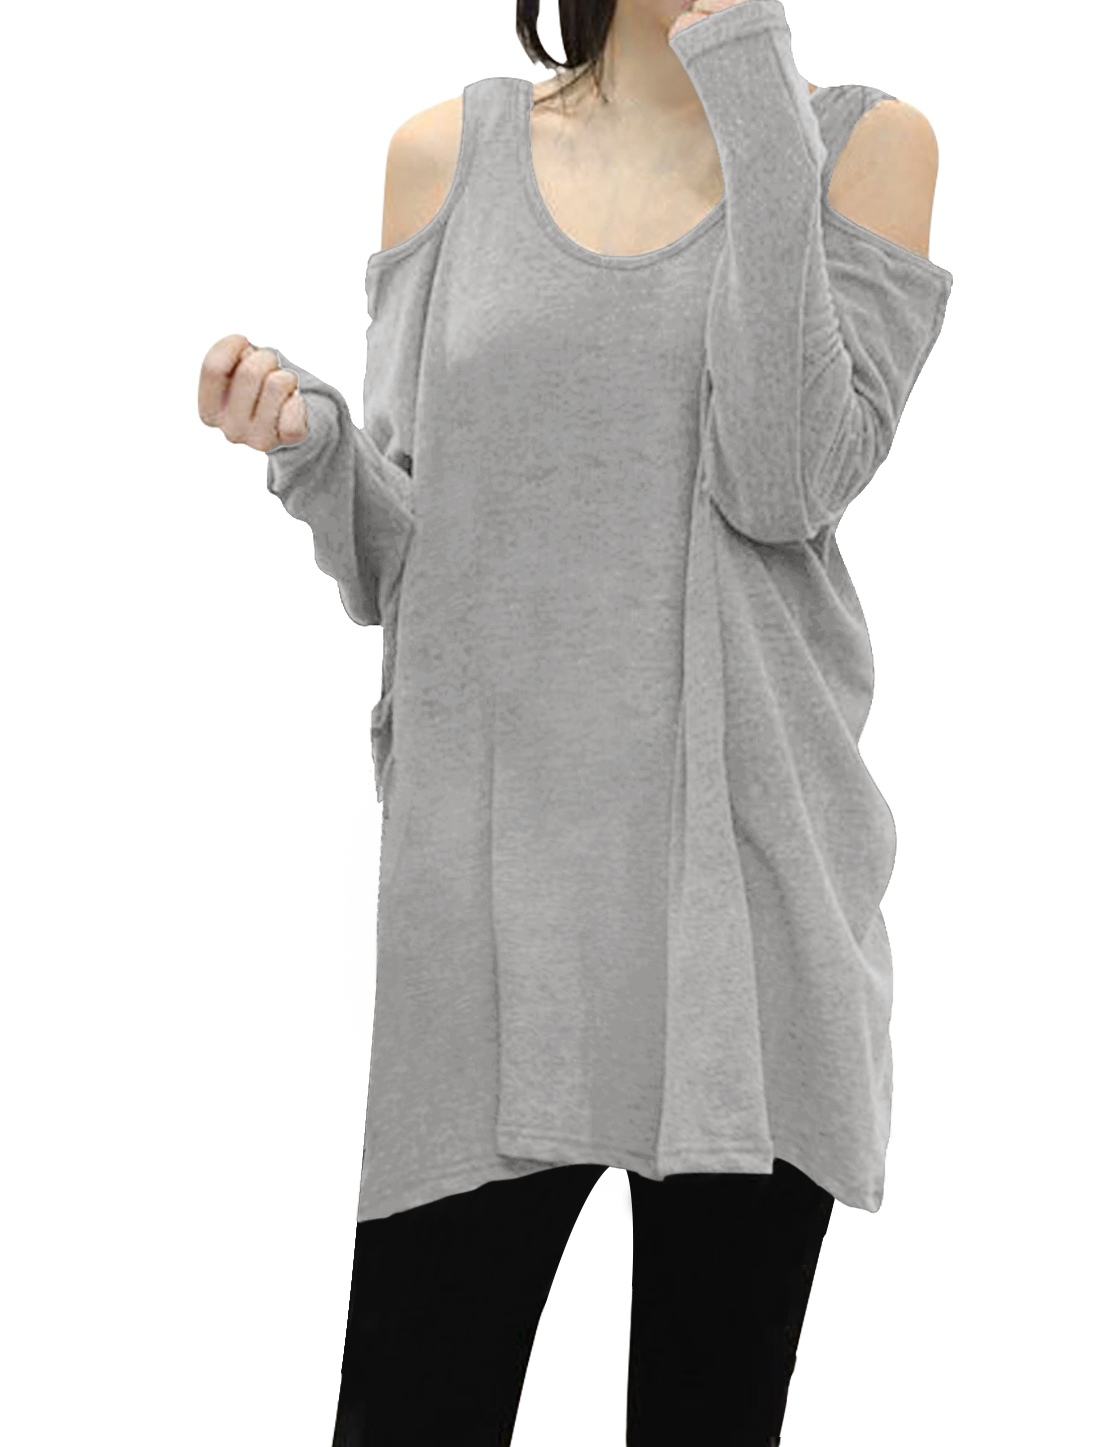 Ladies Scoop Neck Cut Out Shoulder Oversized Tunic Top Light Gray M